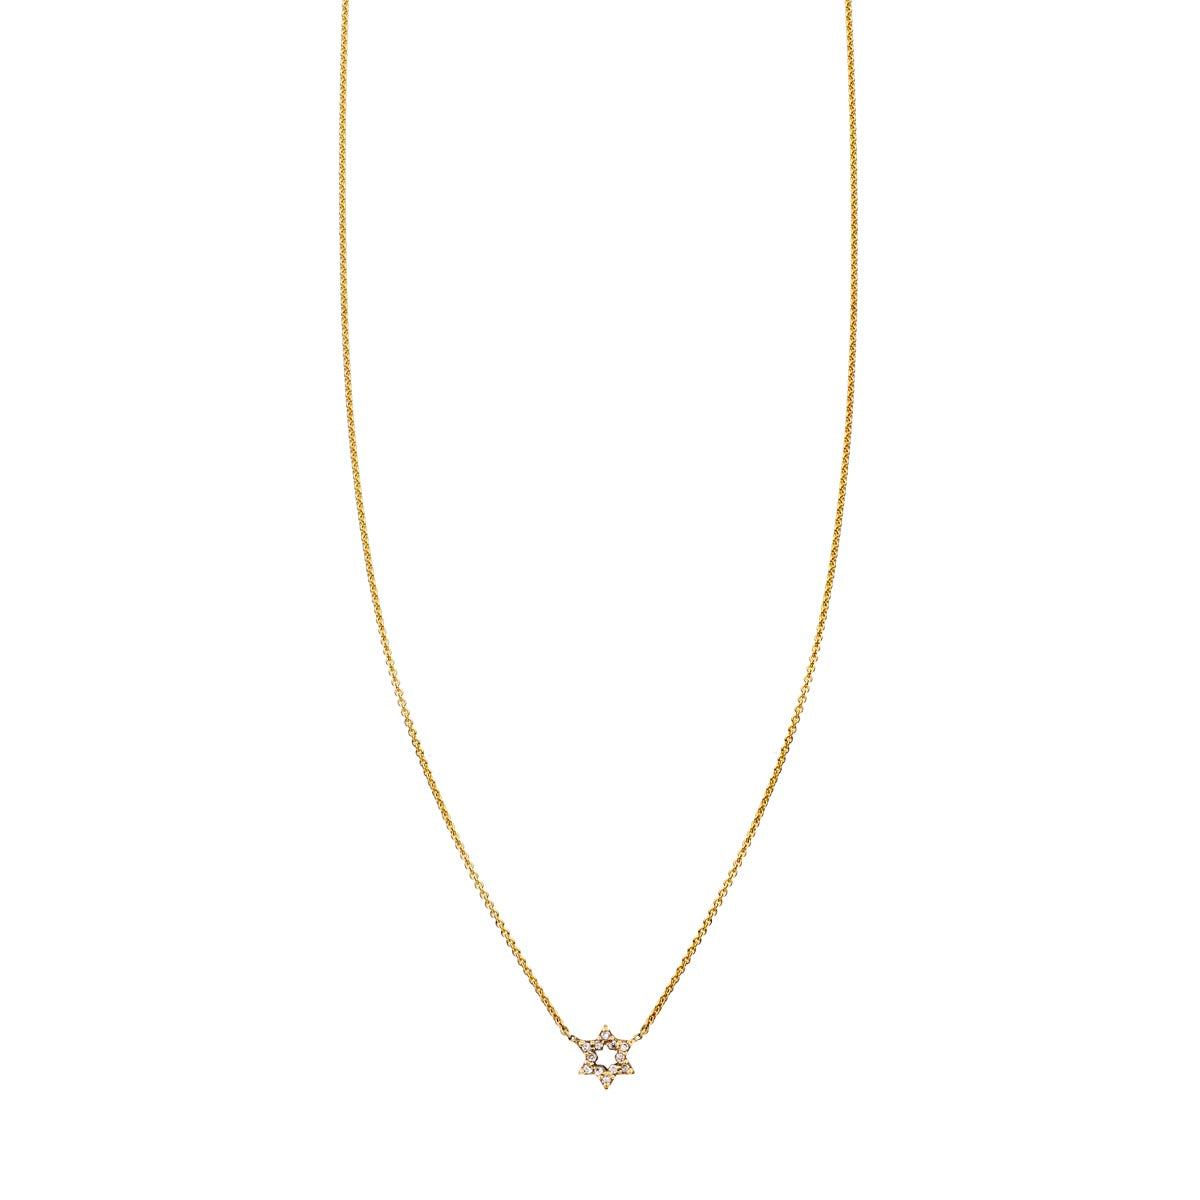 products necklace convertible david adornia yellow gold karat jewish magen ygp no star vermeil of